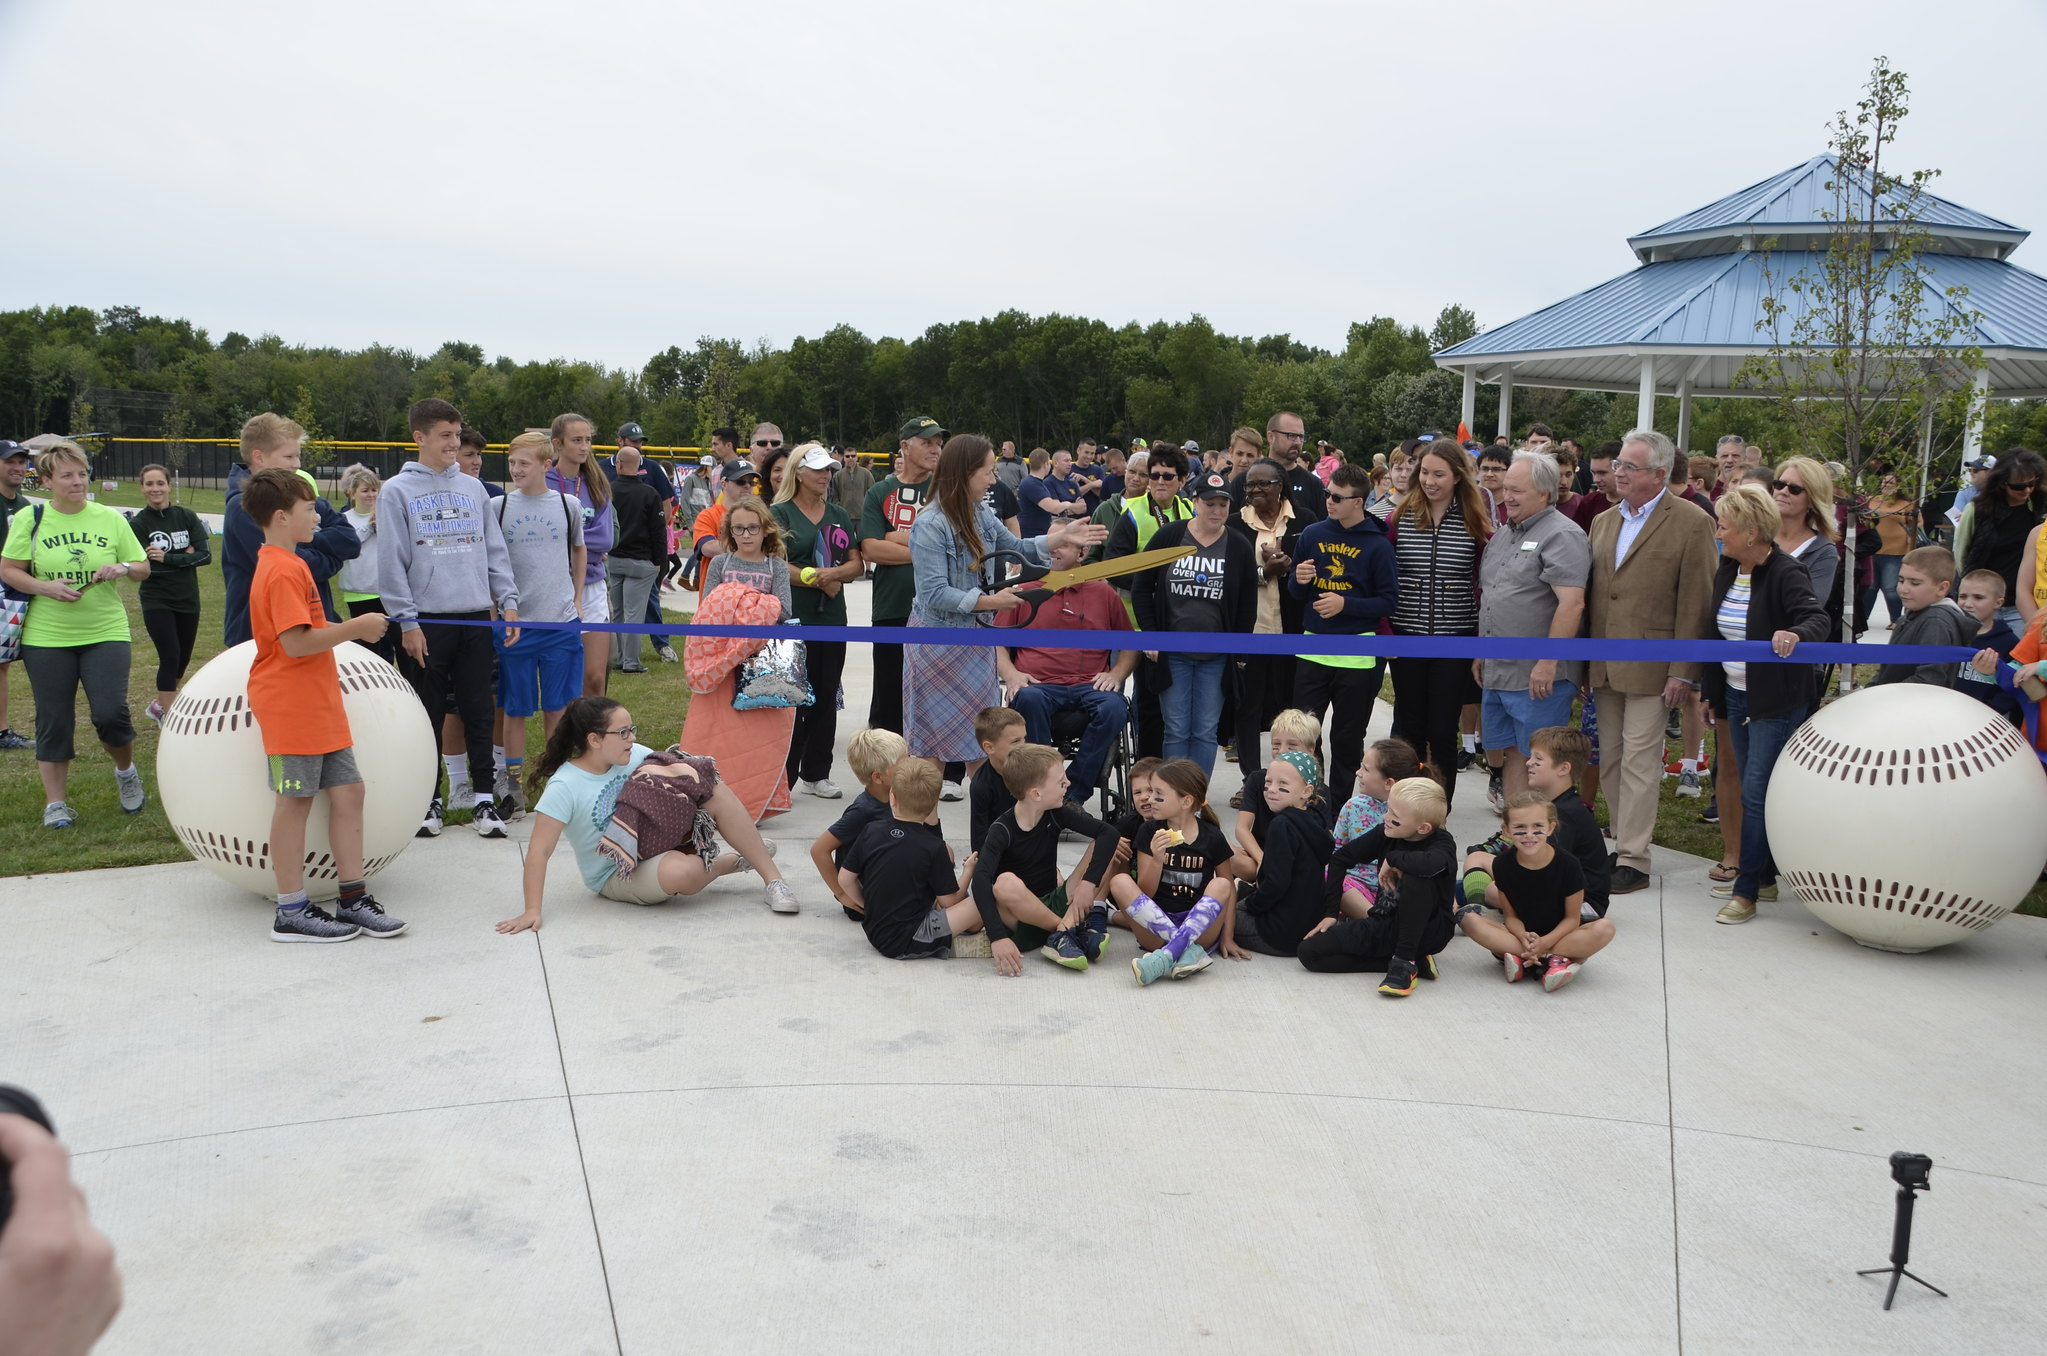 Meridian Township Celebrates Towner Road Park Grand Opening